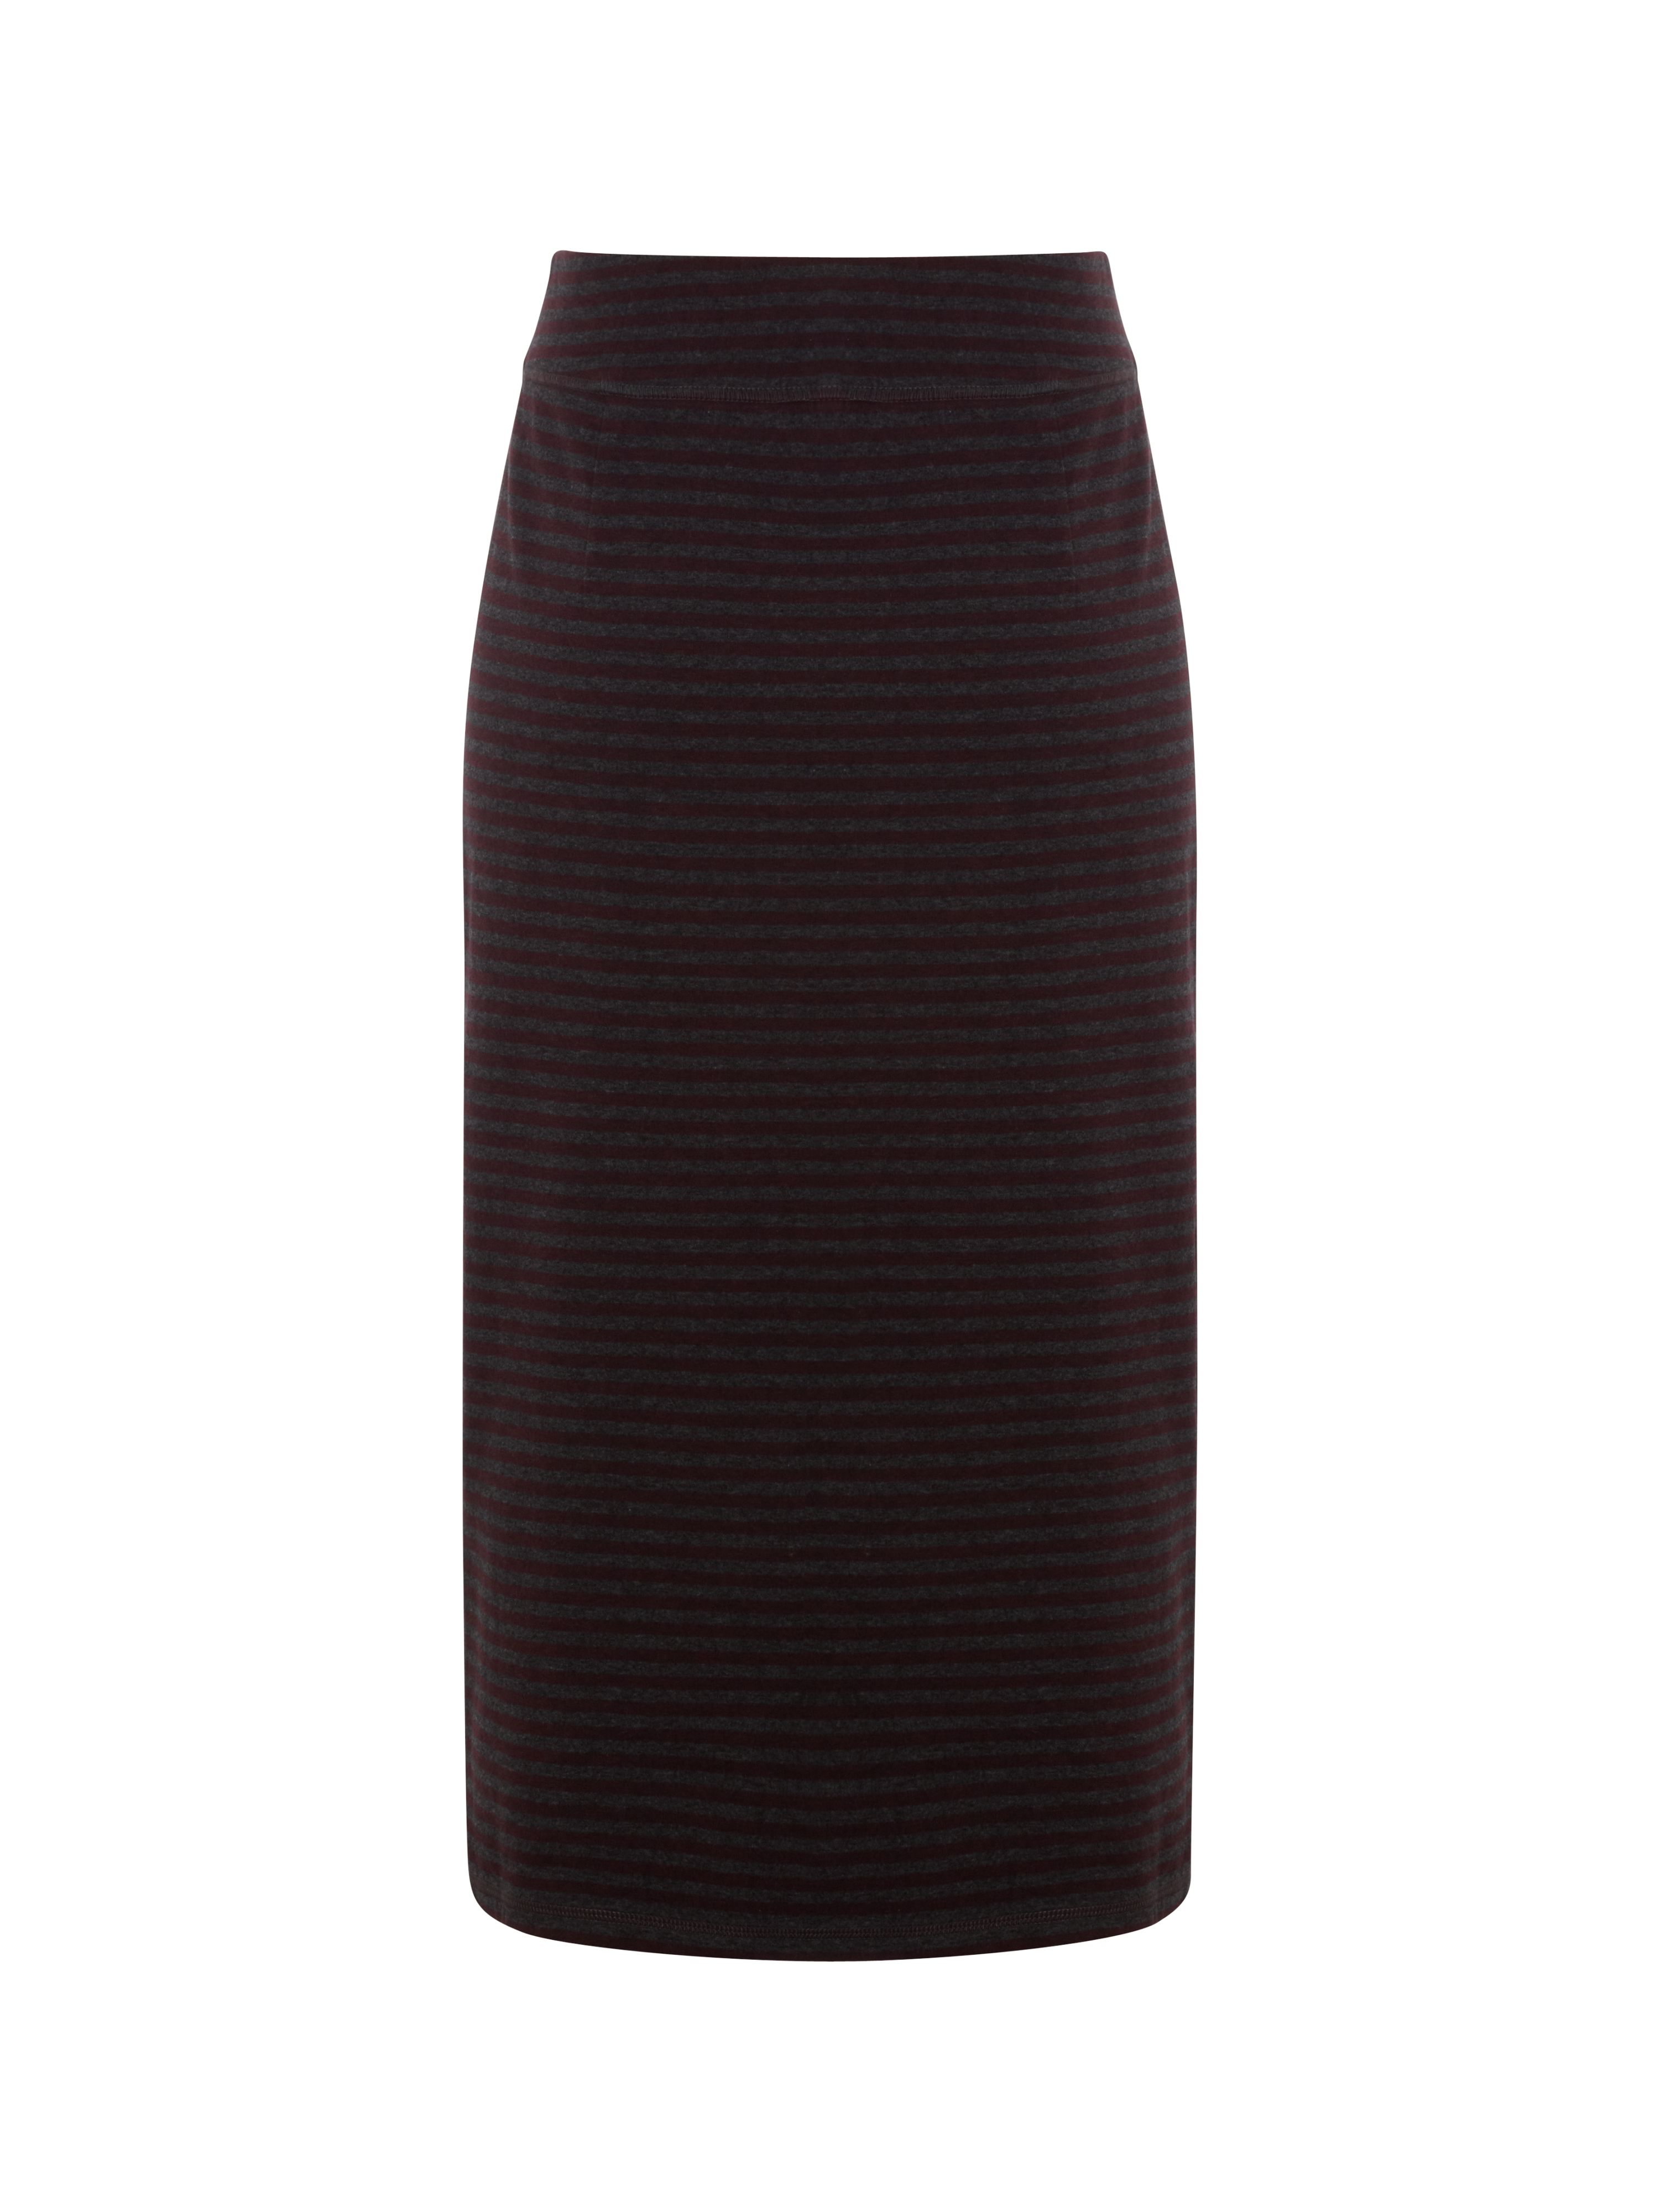 Lexington midi skirt